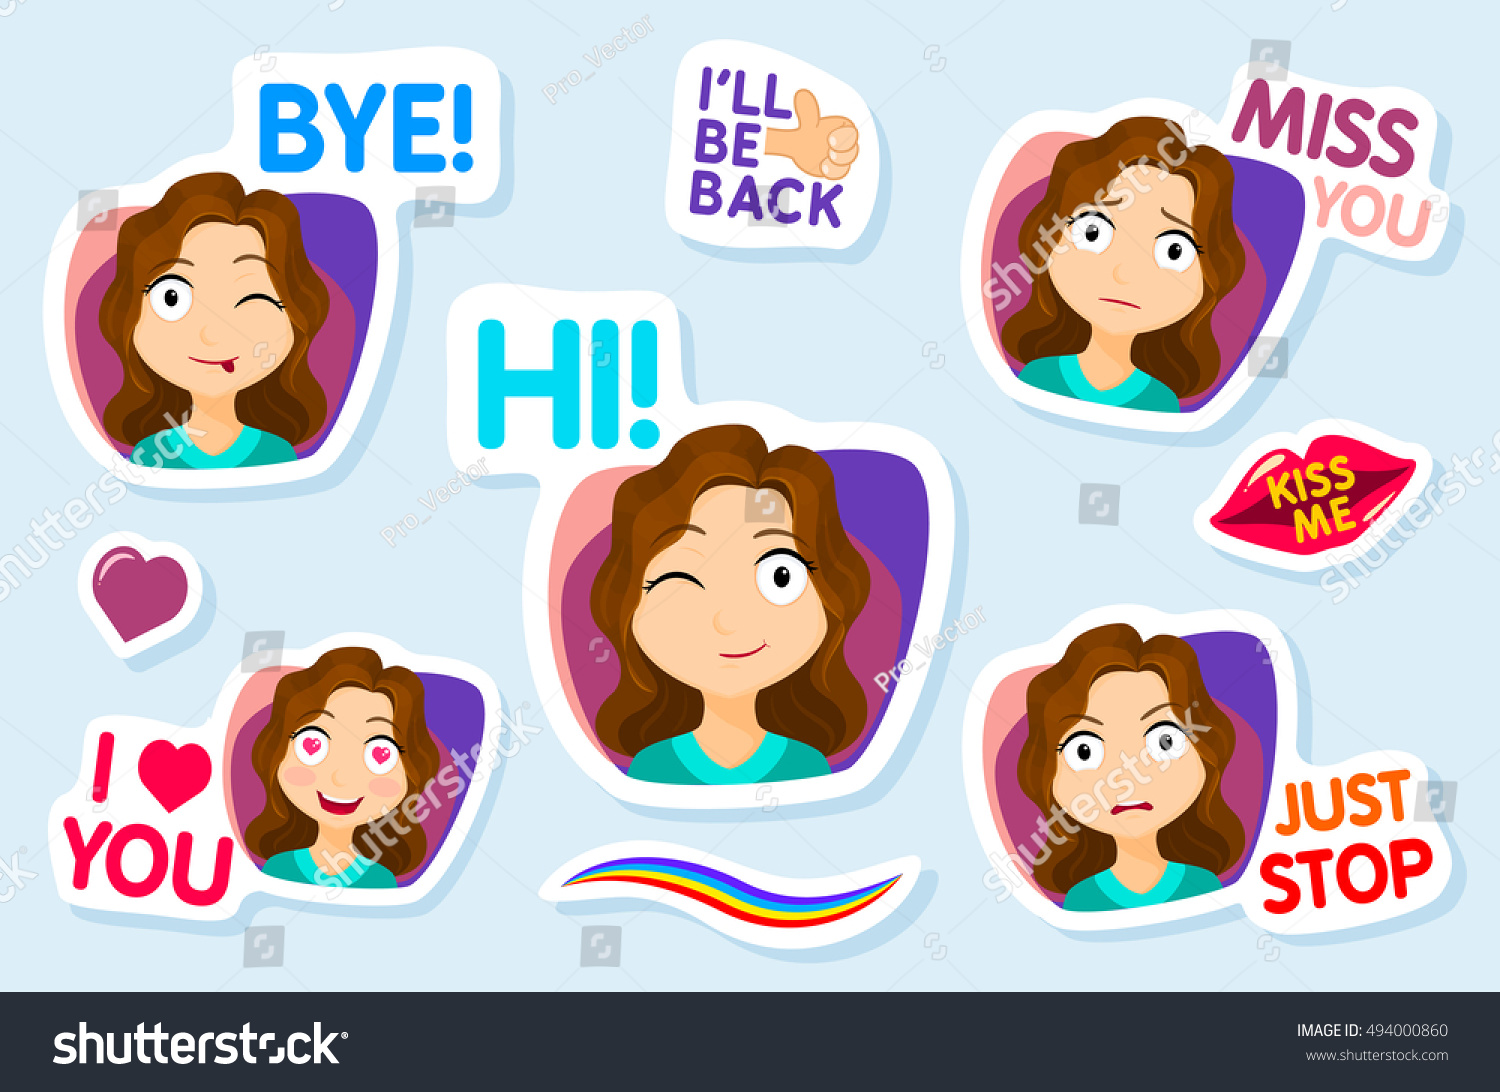 collection stickers chat sms cute girl stock vector. Black Bedroom Furniture Sets. Home Design Ideas